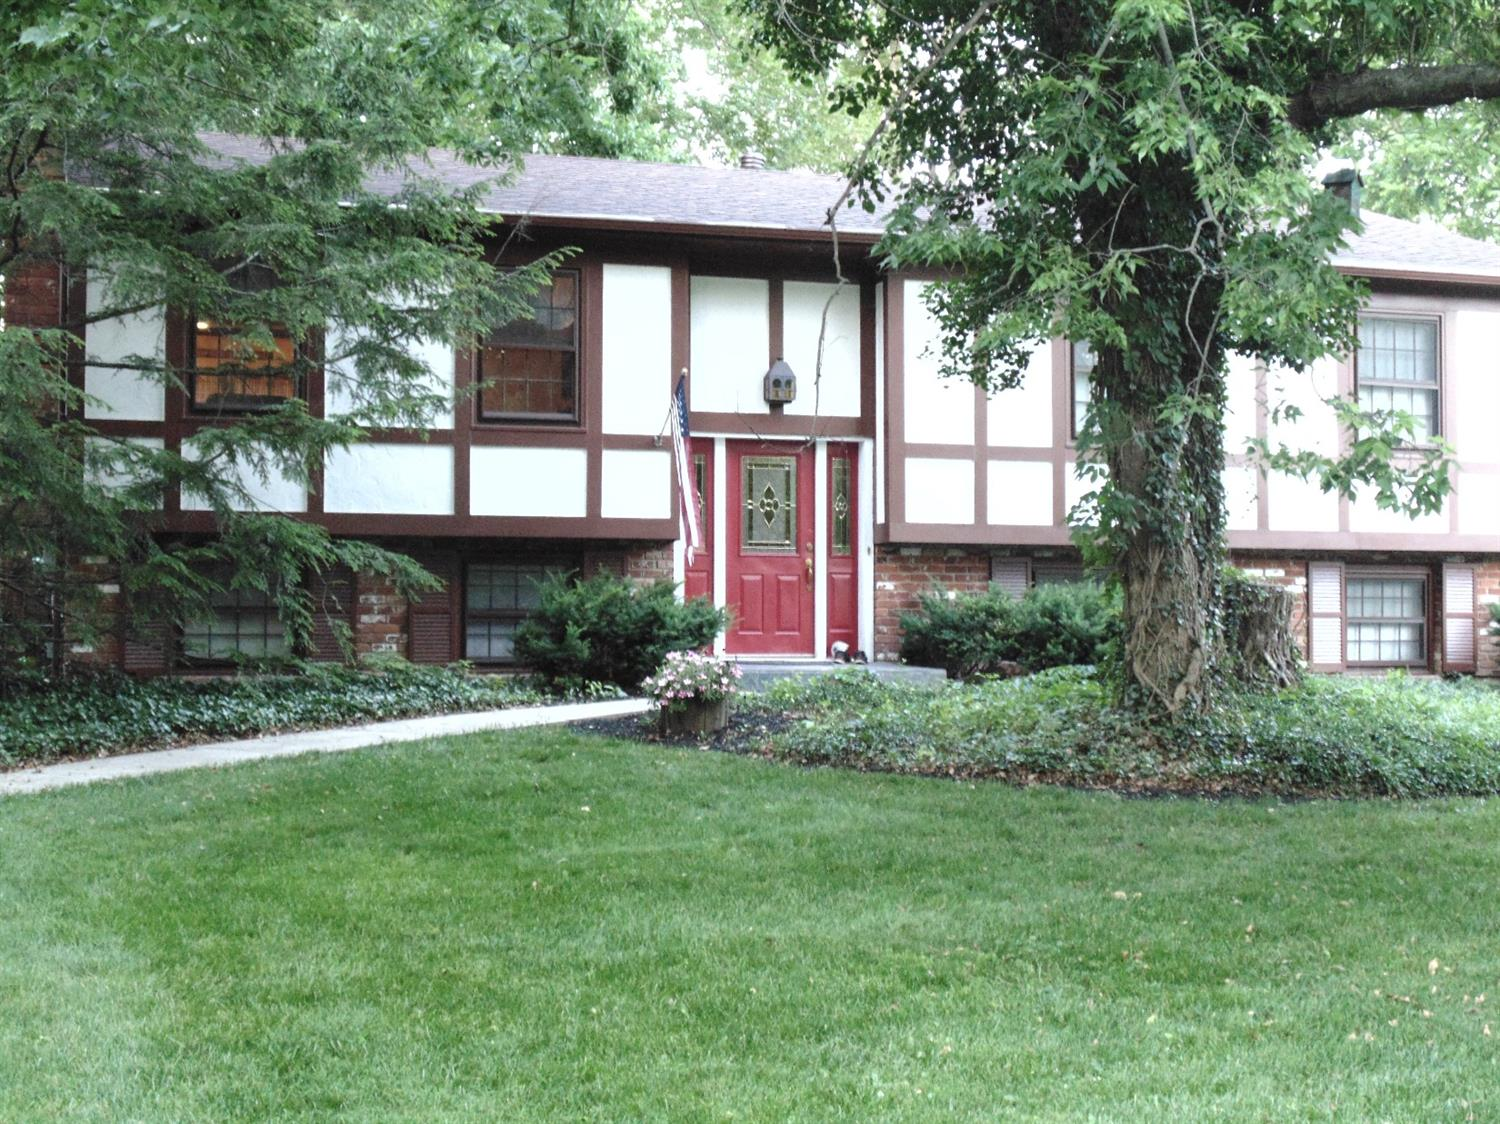 488 Pintail Drive, Loveland, OH 45140